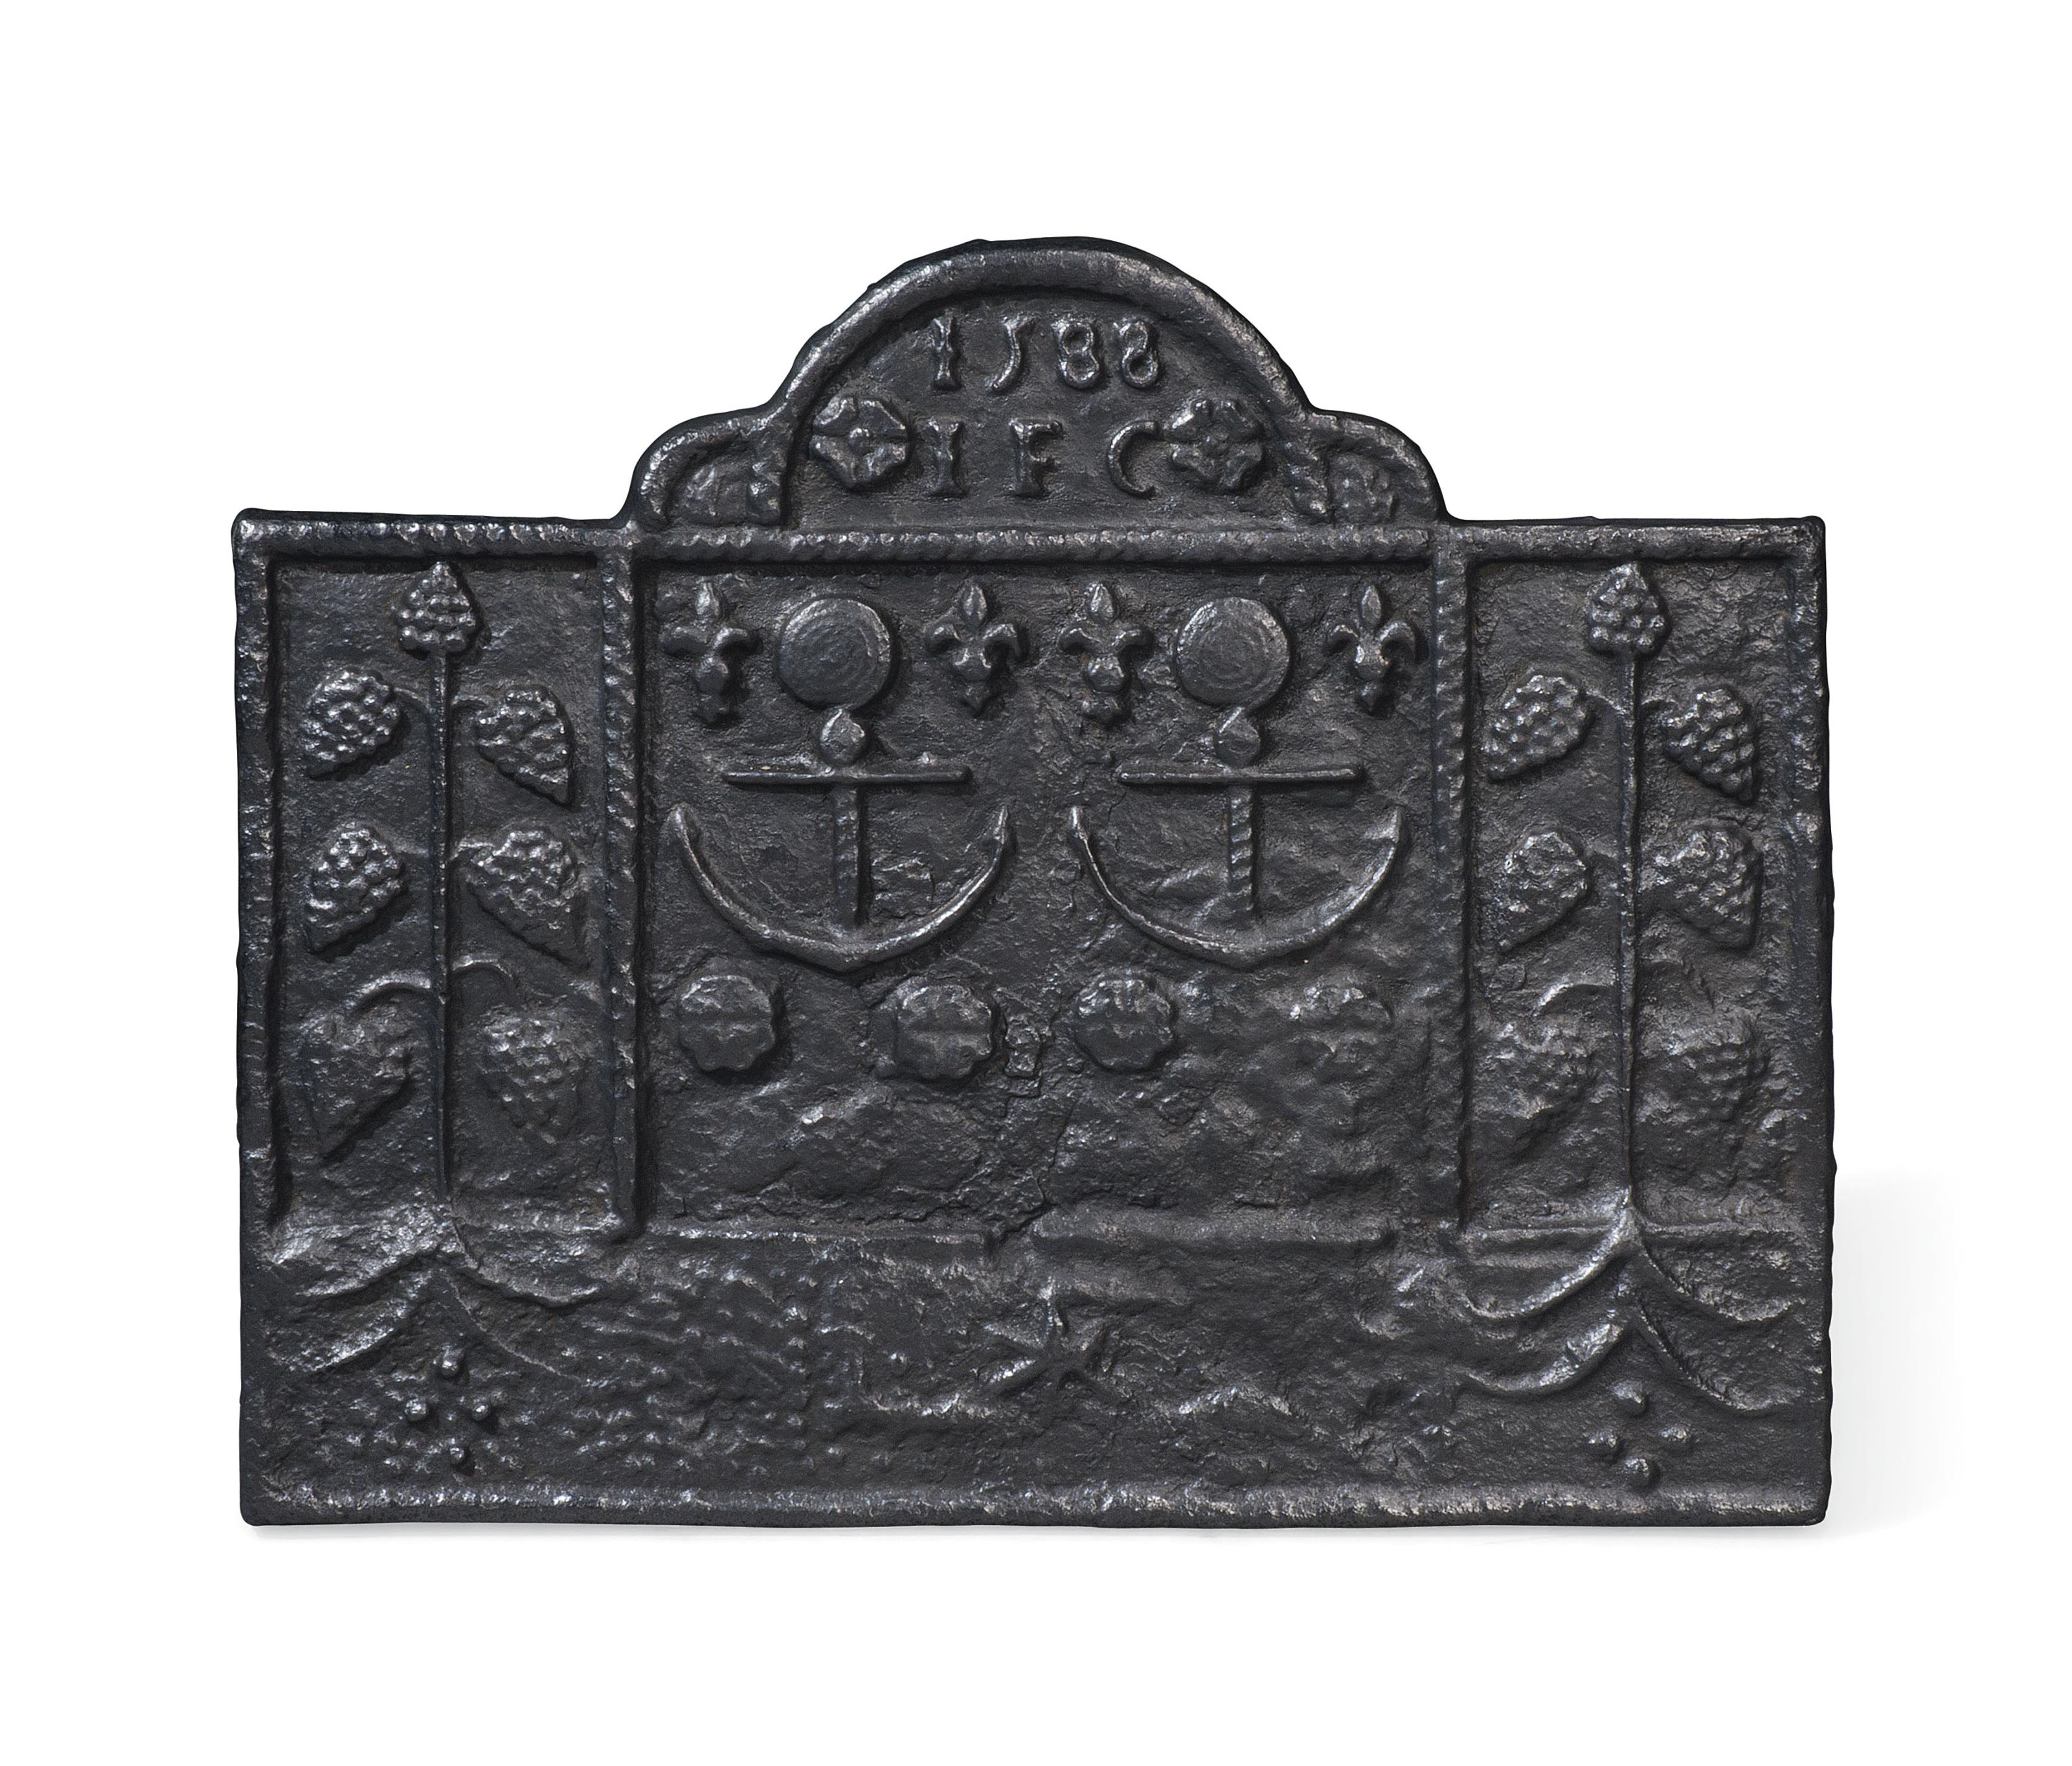 floral fireback cast victorian with store design simple all in one fireplace clean lines iron original